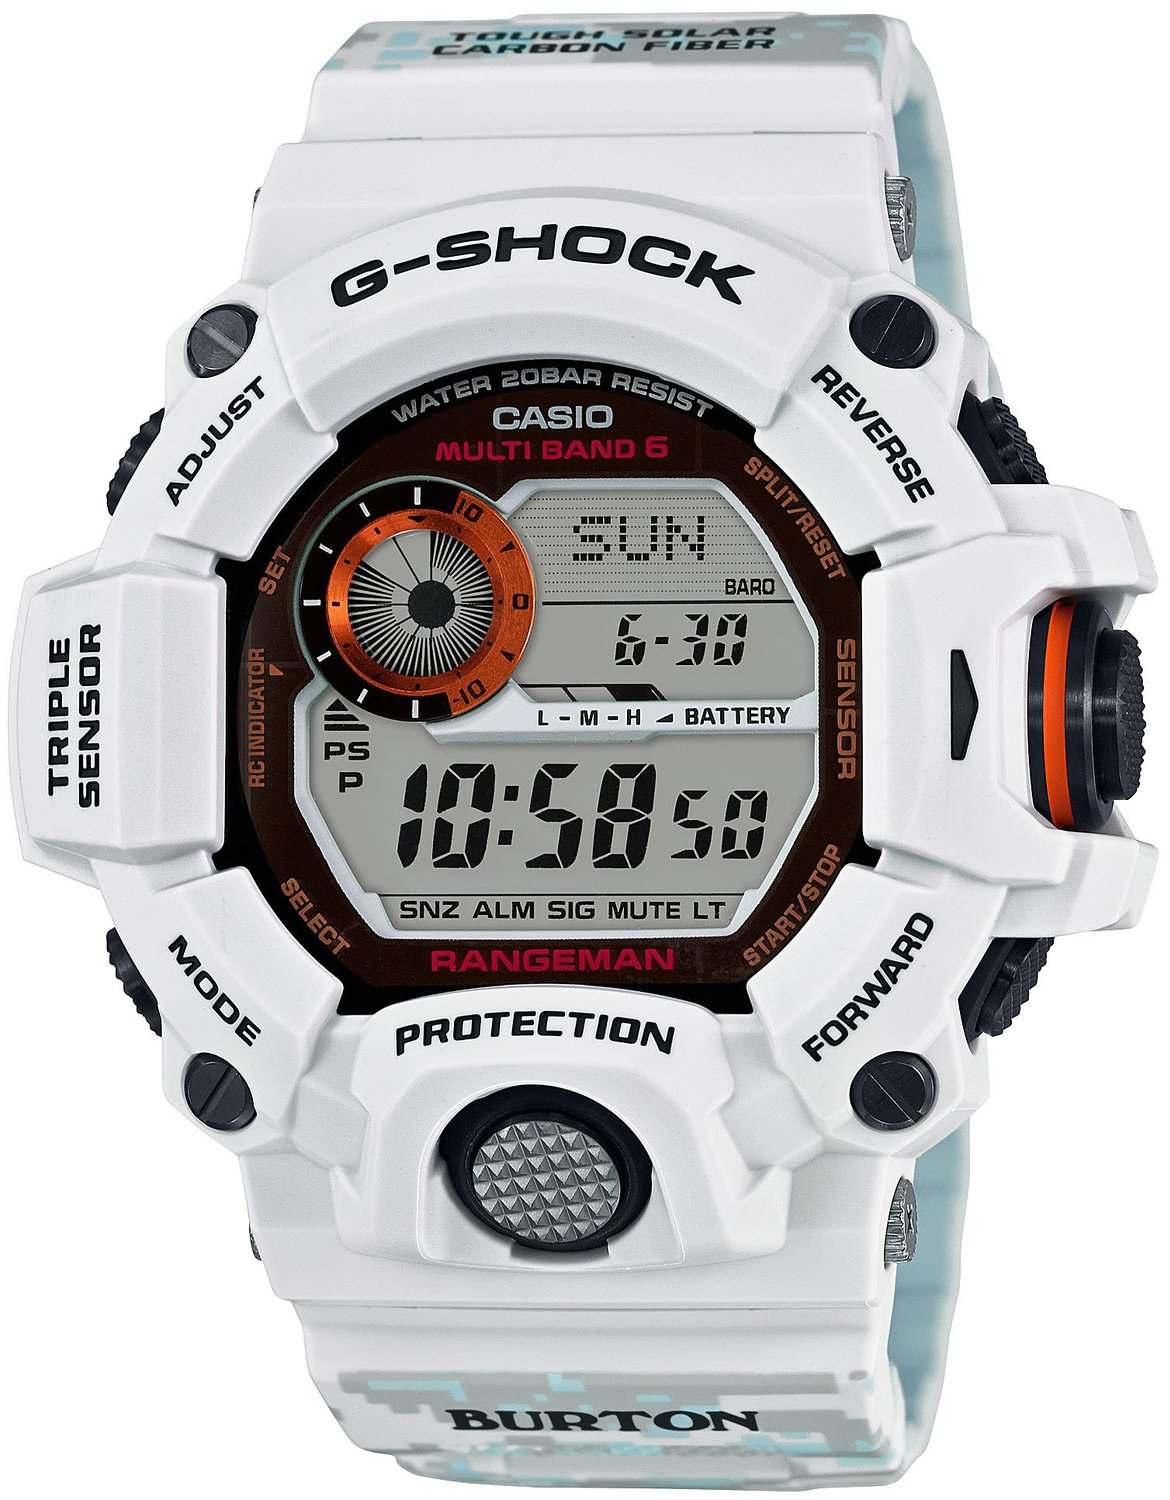 CASIO G-SHOCK BURTON GW-9400BTJ-8JR Limited Edition